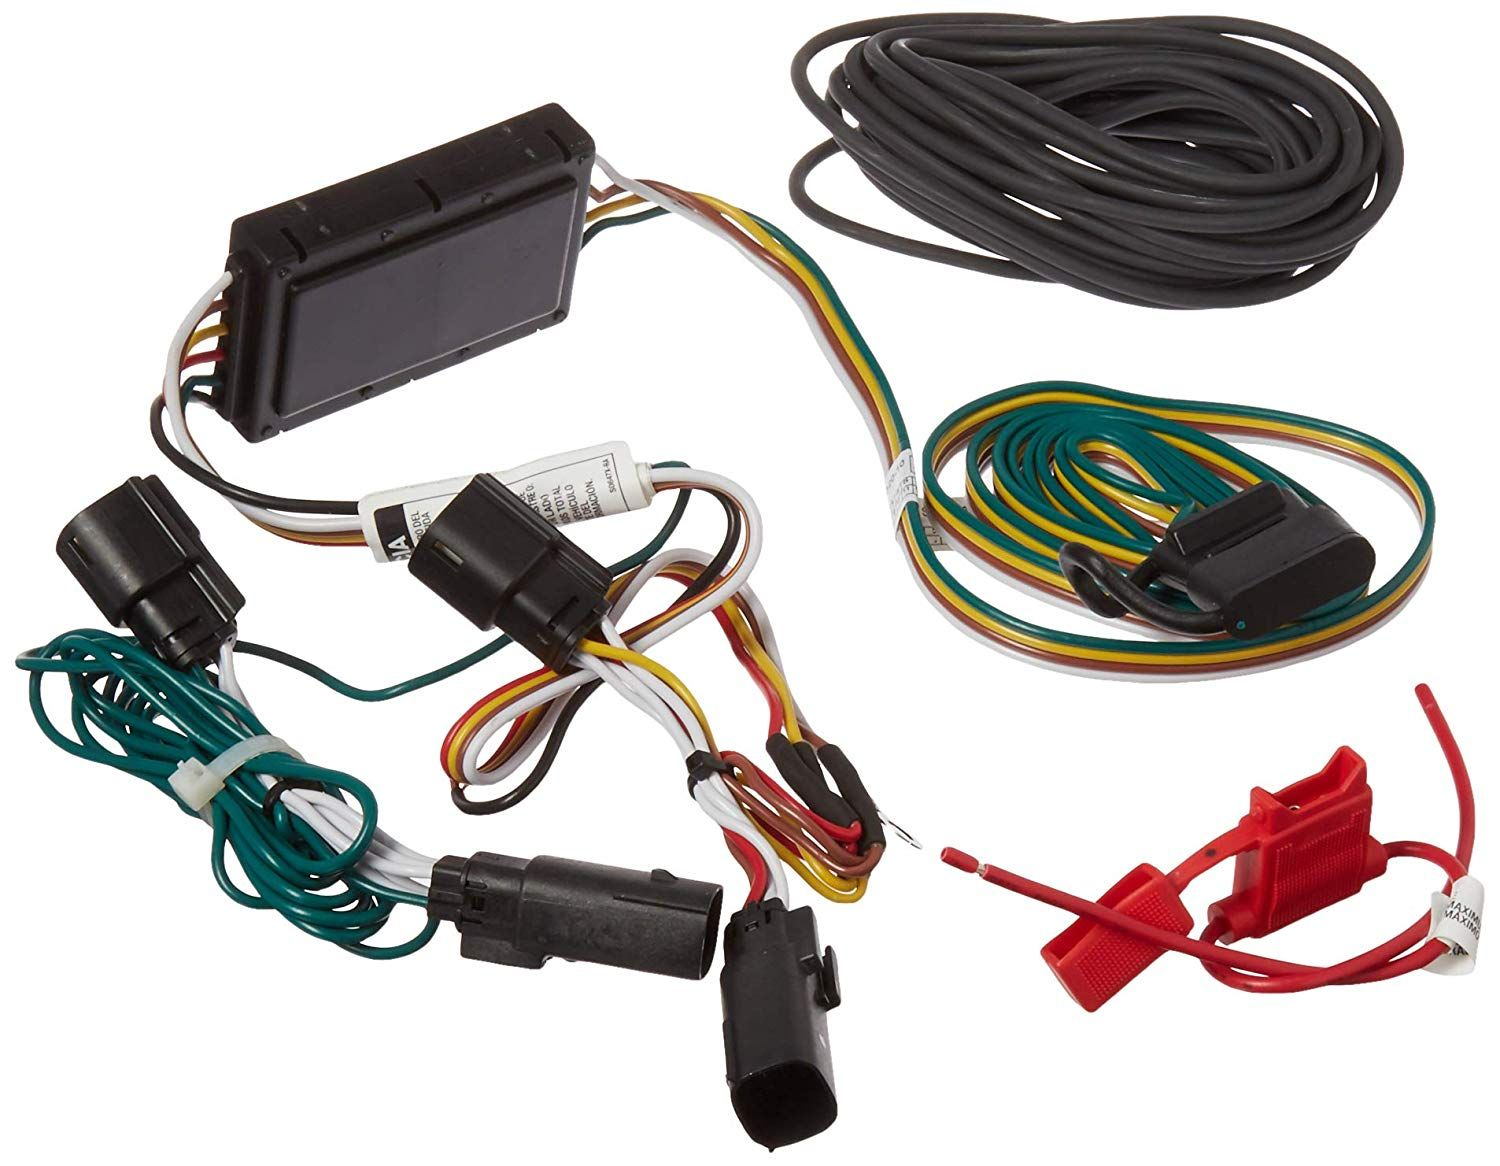 hight resolution of curt manufacturing 56320 custom trailer wiring harness provides a 4 way flat connector for